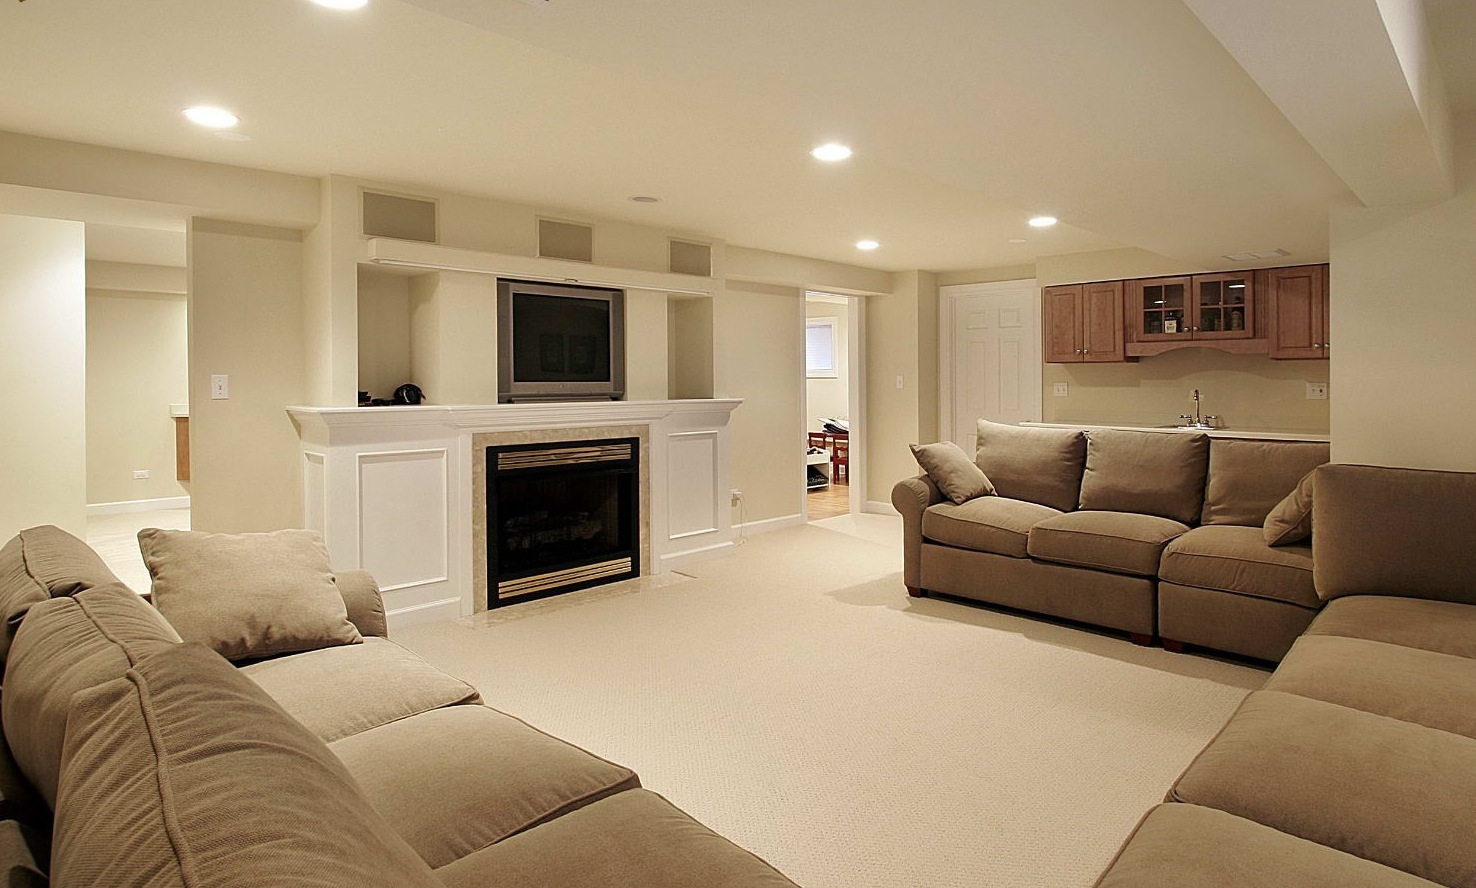 Home Renovation Ideas Living Room Inspiration 30 Basement Remodeling Ideas & Inspiration Review